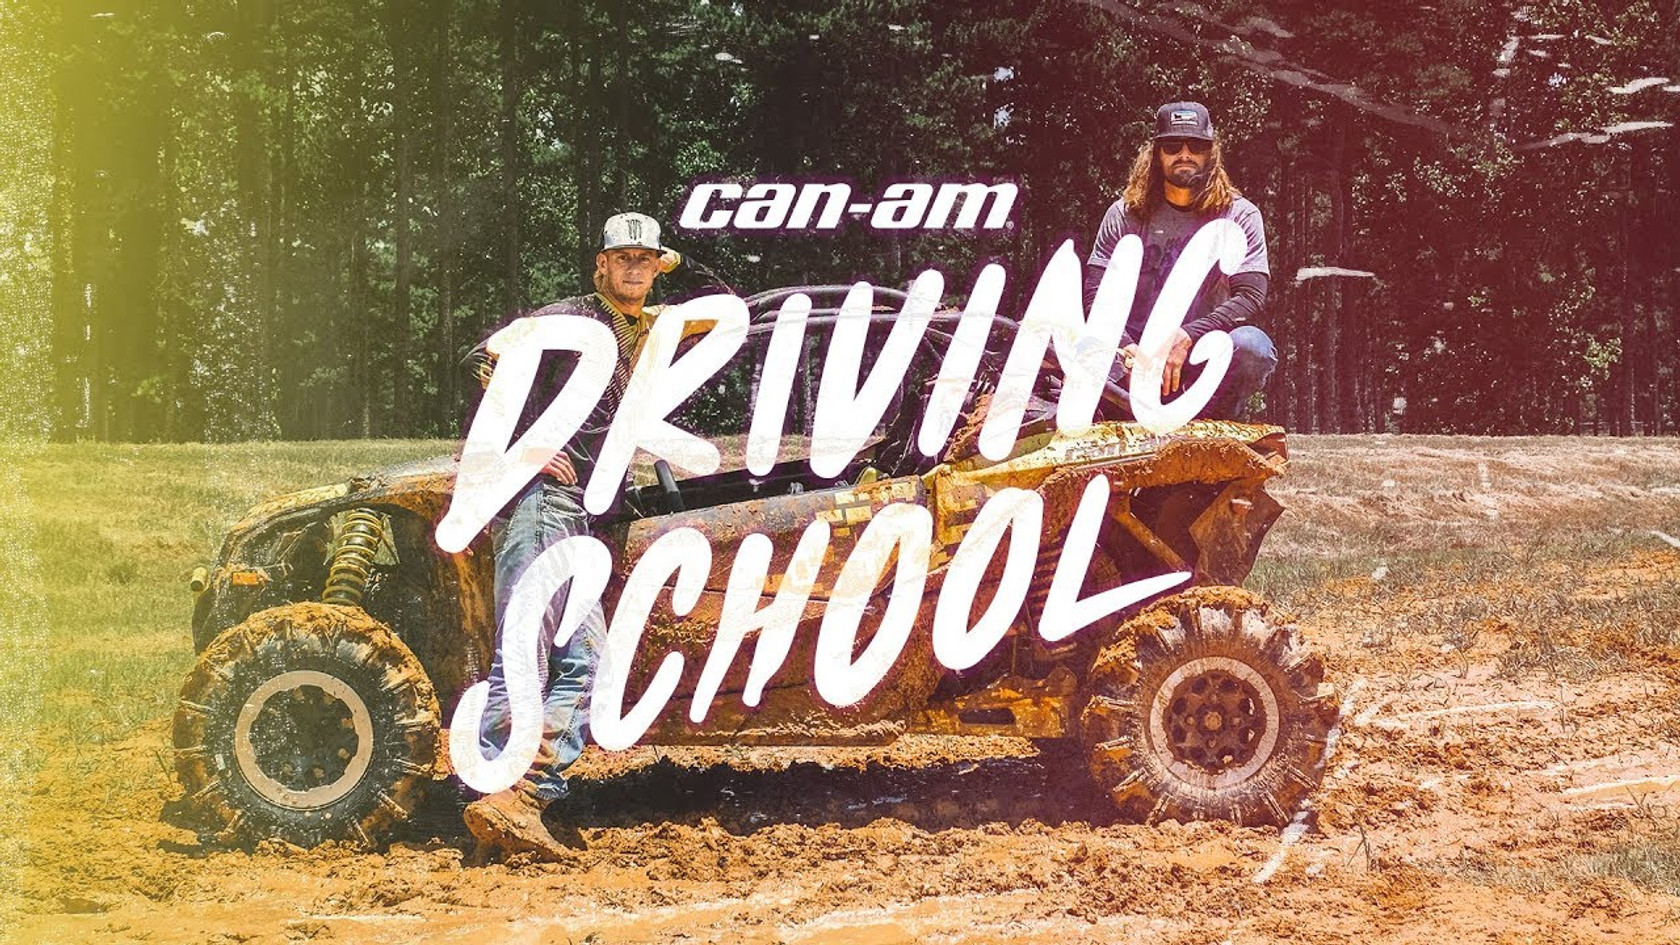 Can-Am Driving School